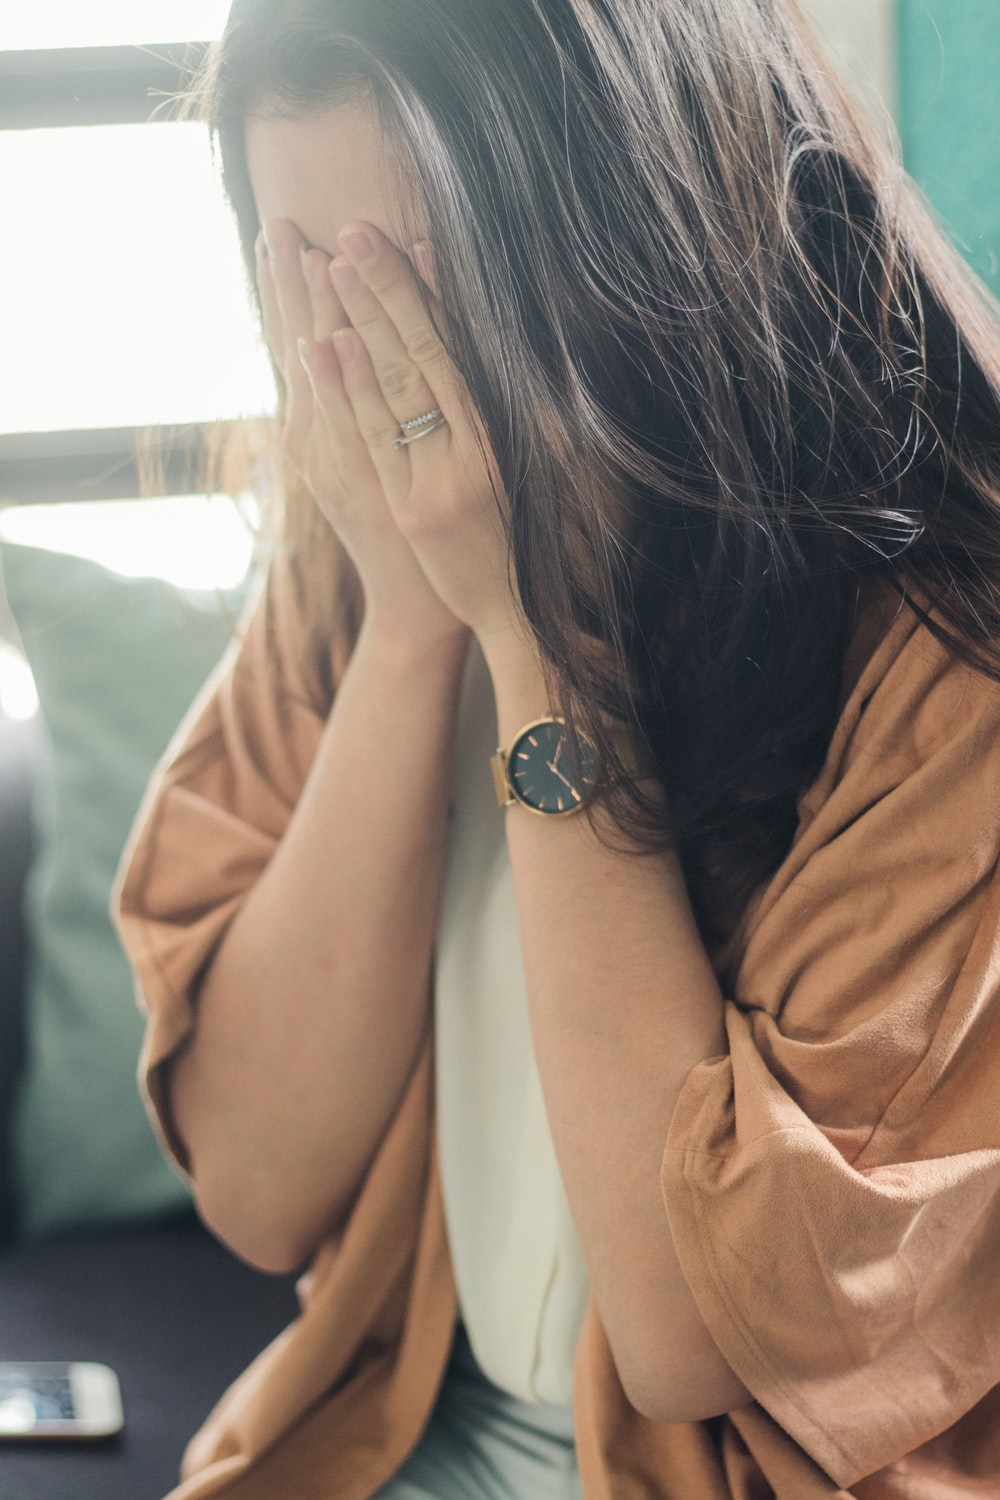 woman in brown shirt covering her face